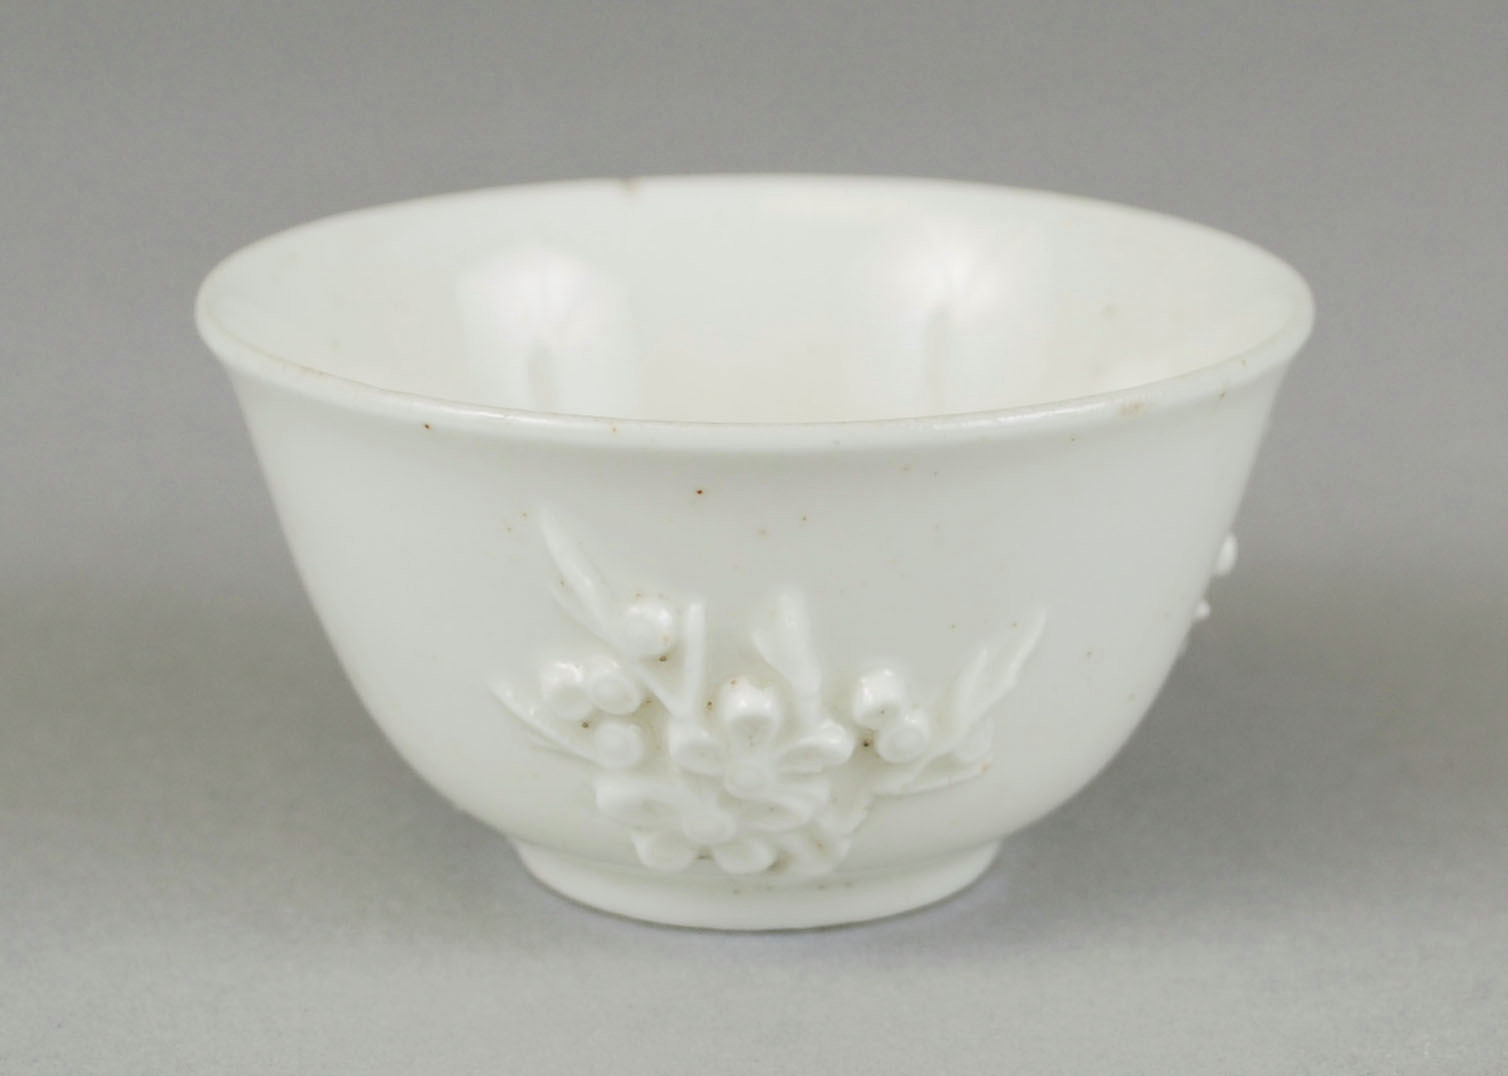 Small white, soft-paste porcelain tea bowl of blanc de chine type with molded prunus decoration on the exterior.